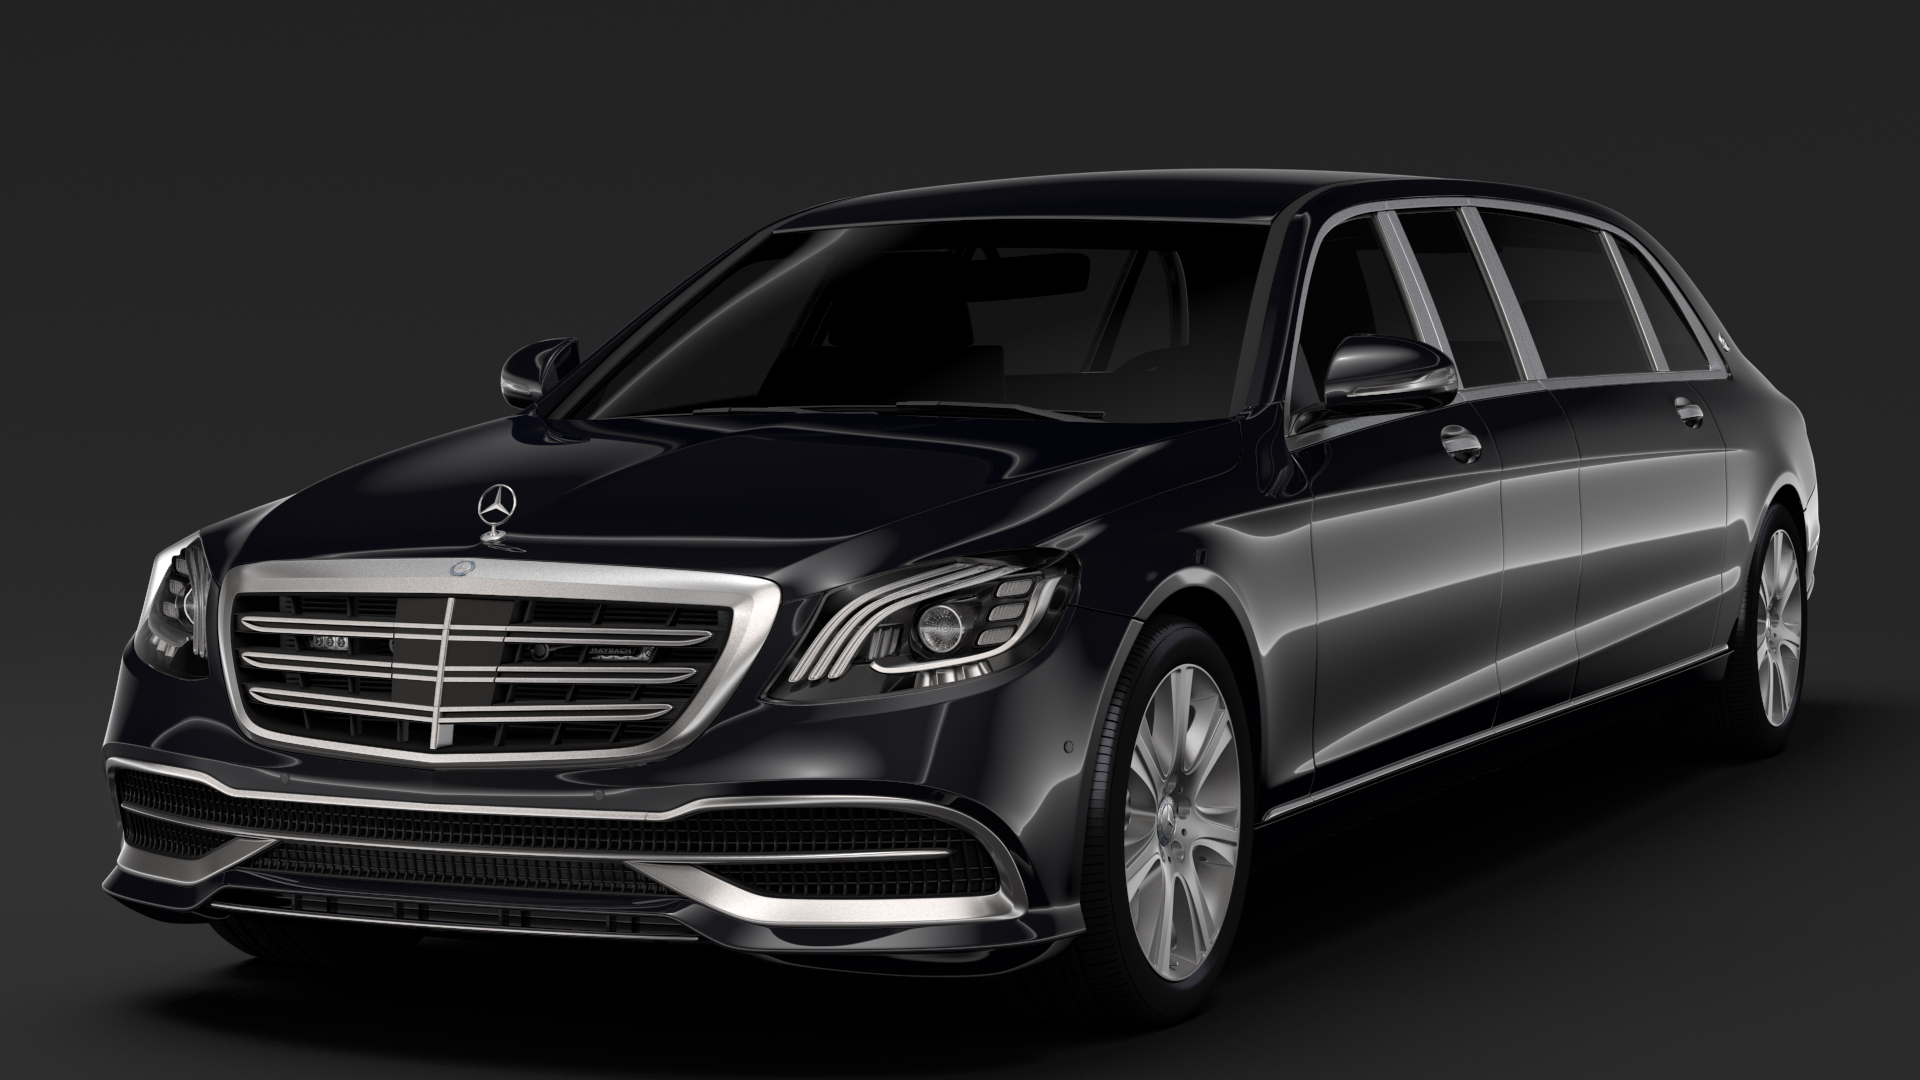 Mercedes Maybach S 650 Pullman Guard VV222 2018 3d model 3ds max fbx c4d lwo ma mb hrc xsi obj 283952